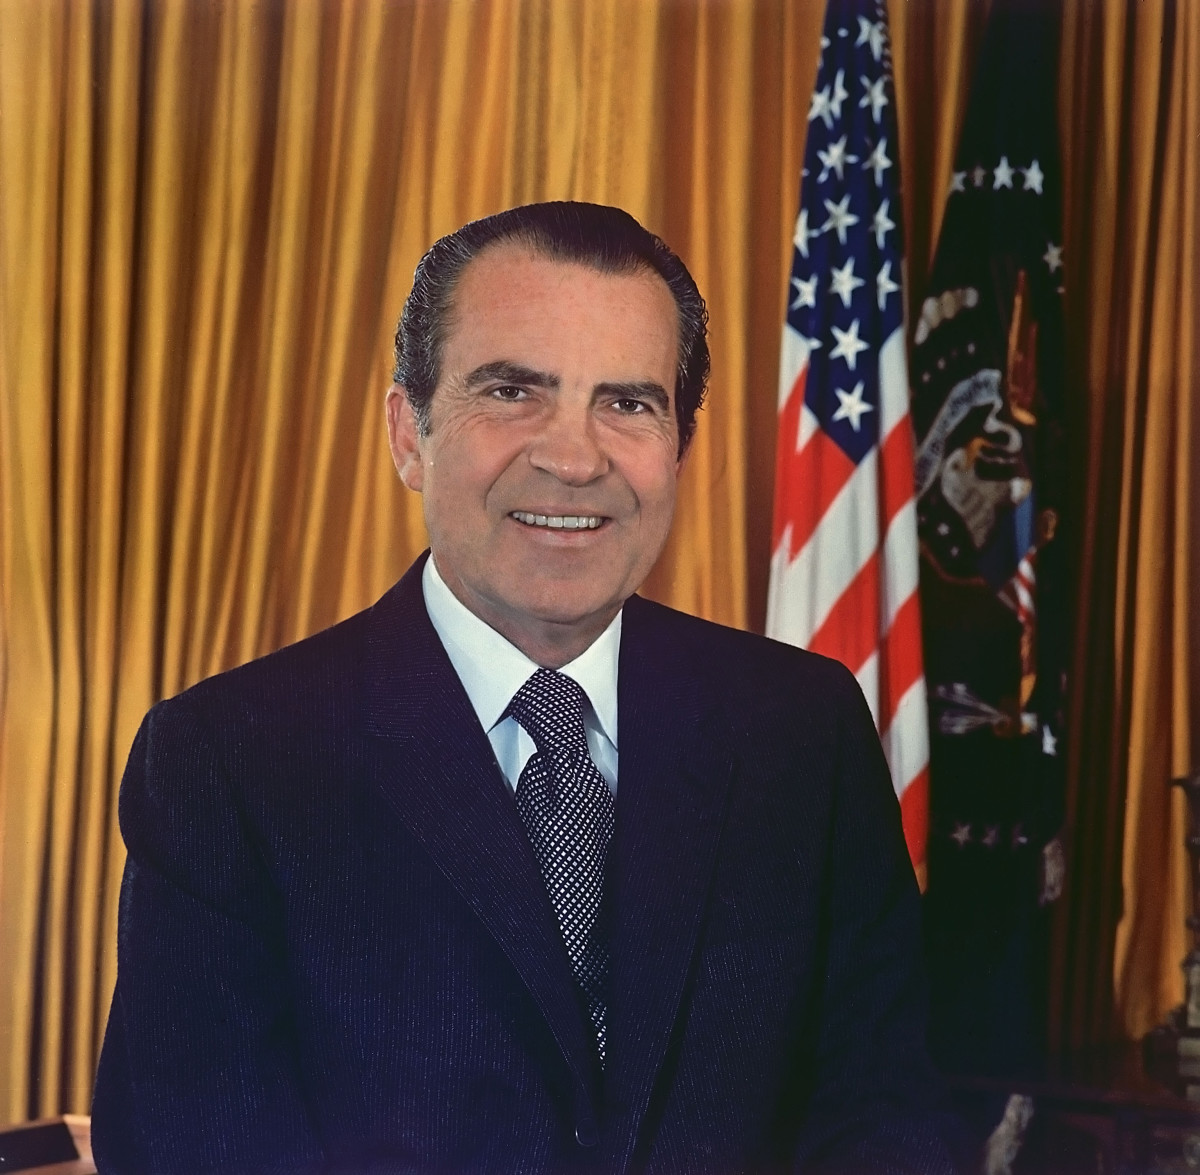 Richard Nixon–An Embattled President